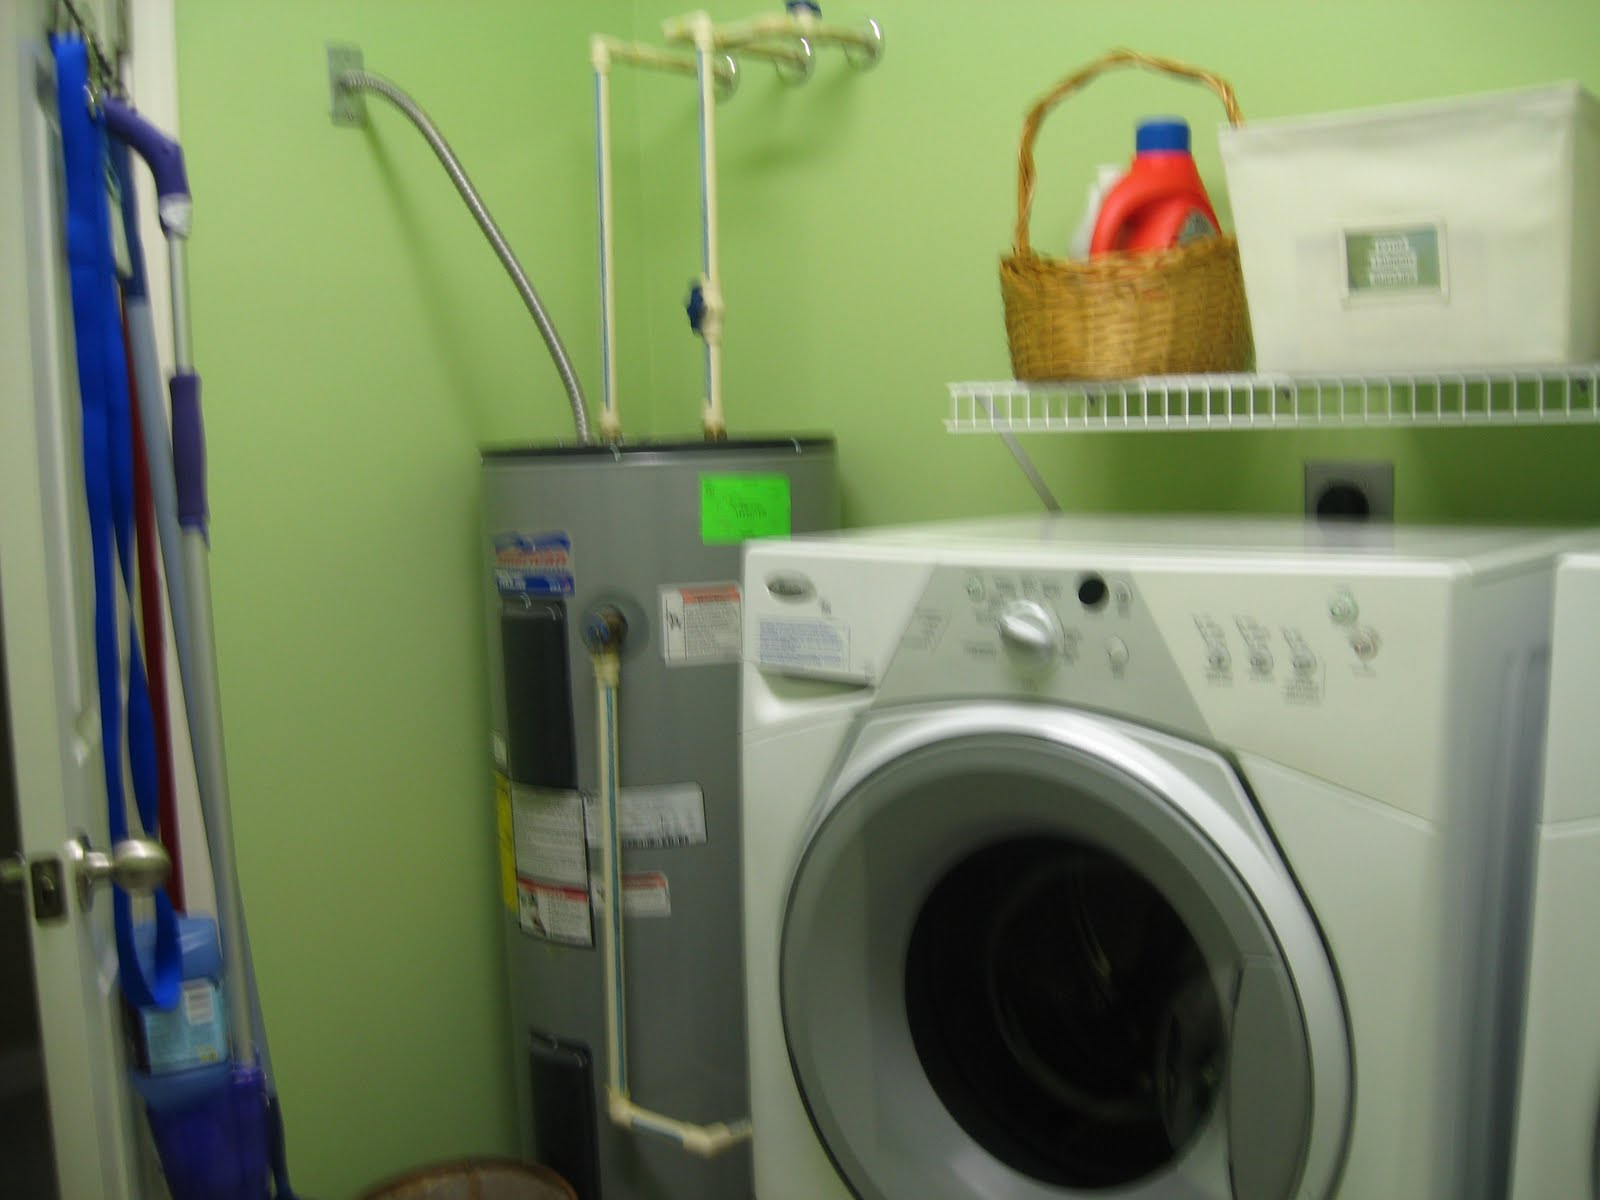 Brought to You by the Couch: Show Me Your Life - Laundry Room